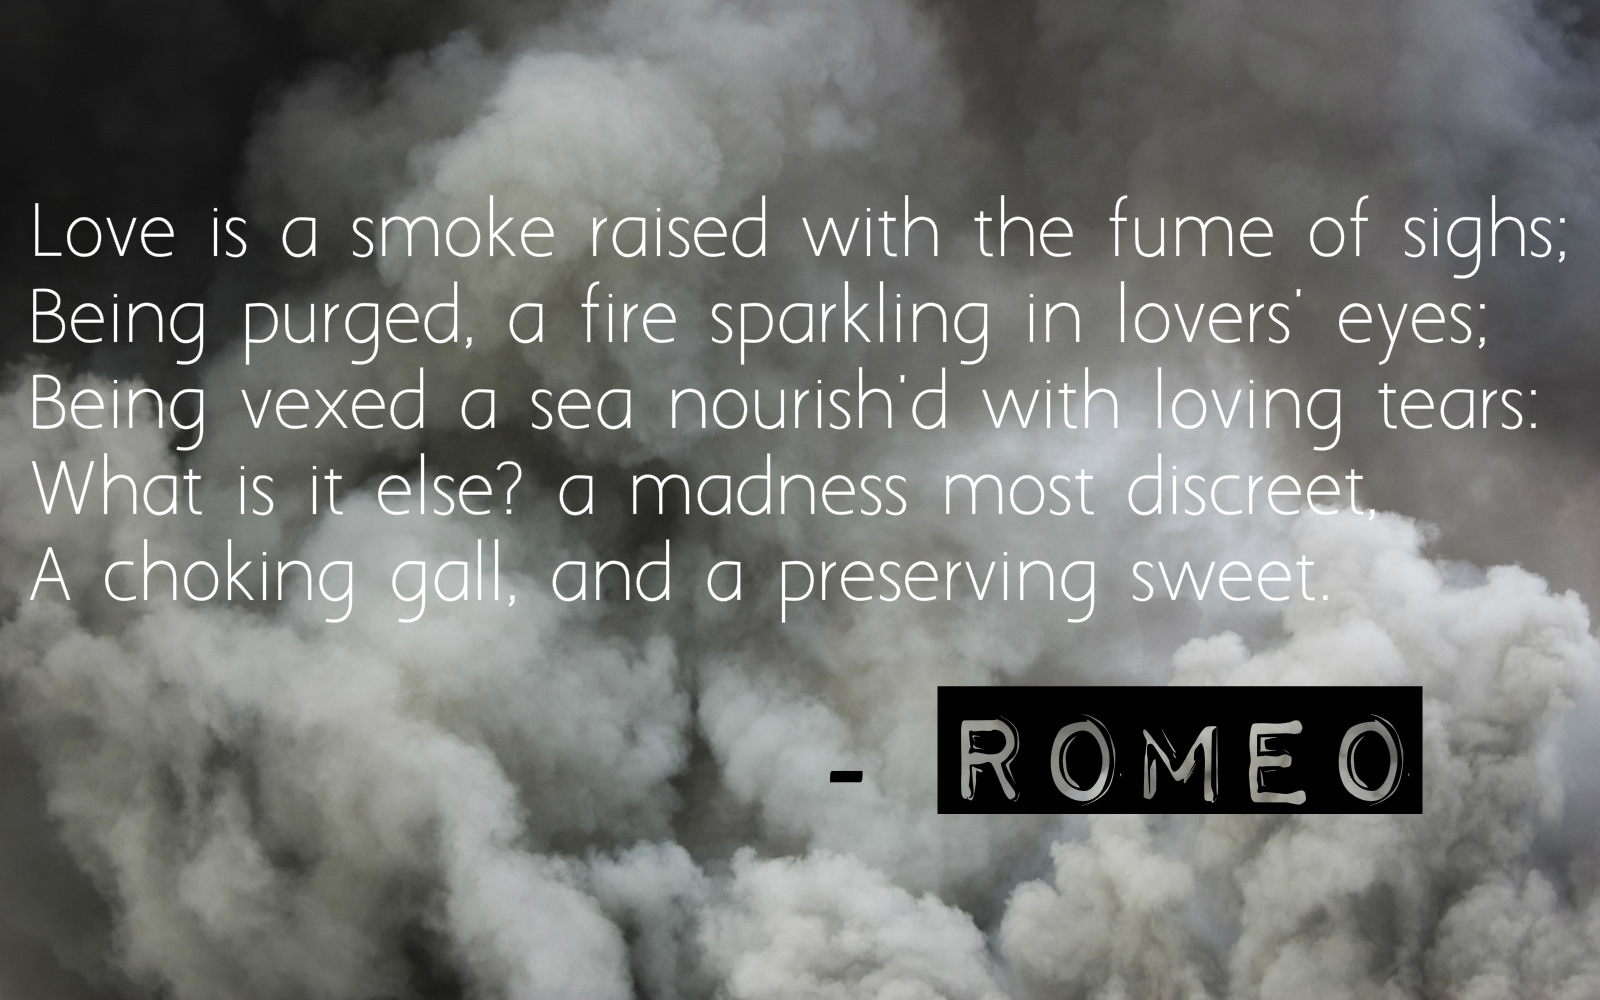 Charming This Is A Famous Definition Of Love From The Master Playwright Through His  Character Romeo. It Starts By Saying That Love Is A Smoke That Rises From  The ...